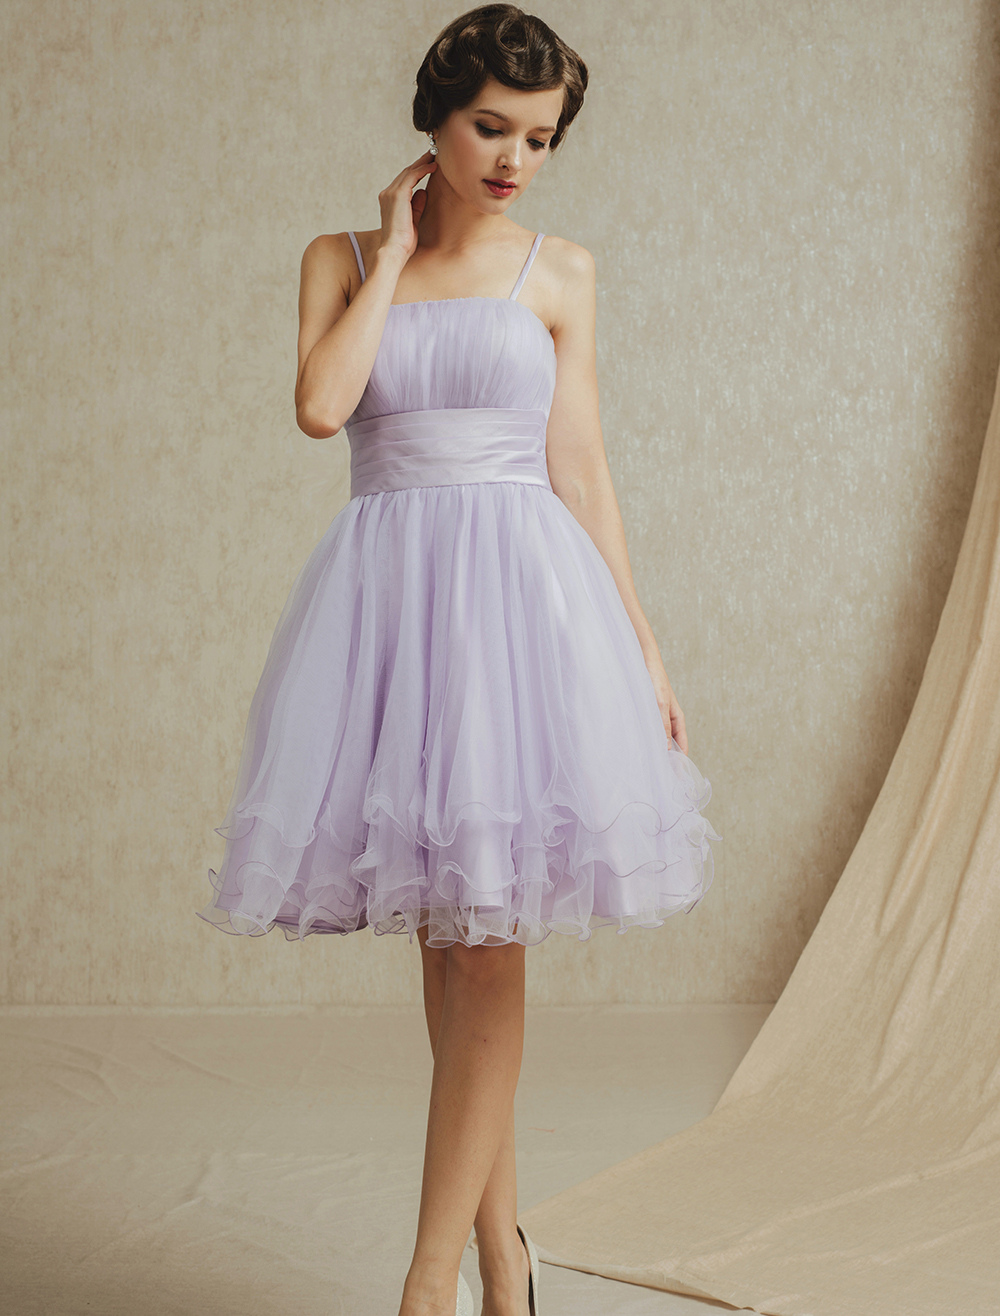 Short Bridesmaid Dress with Removable Straps & Sash